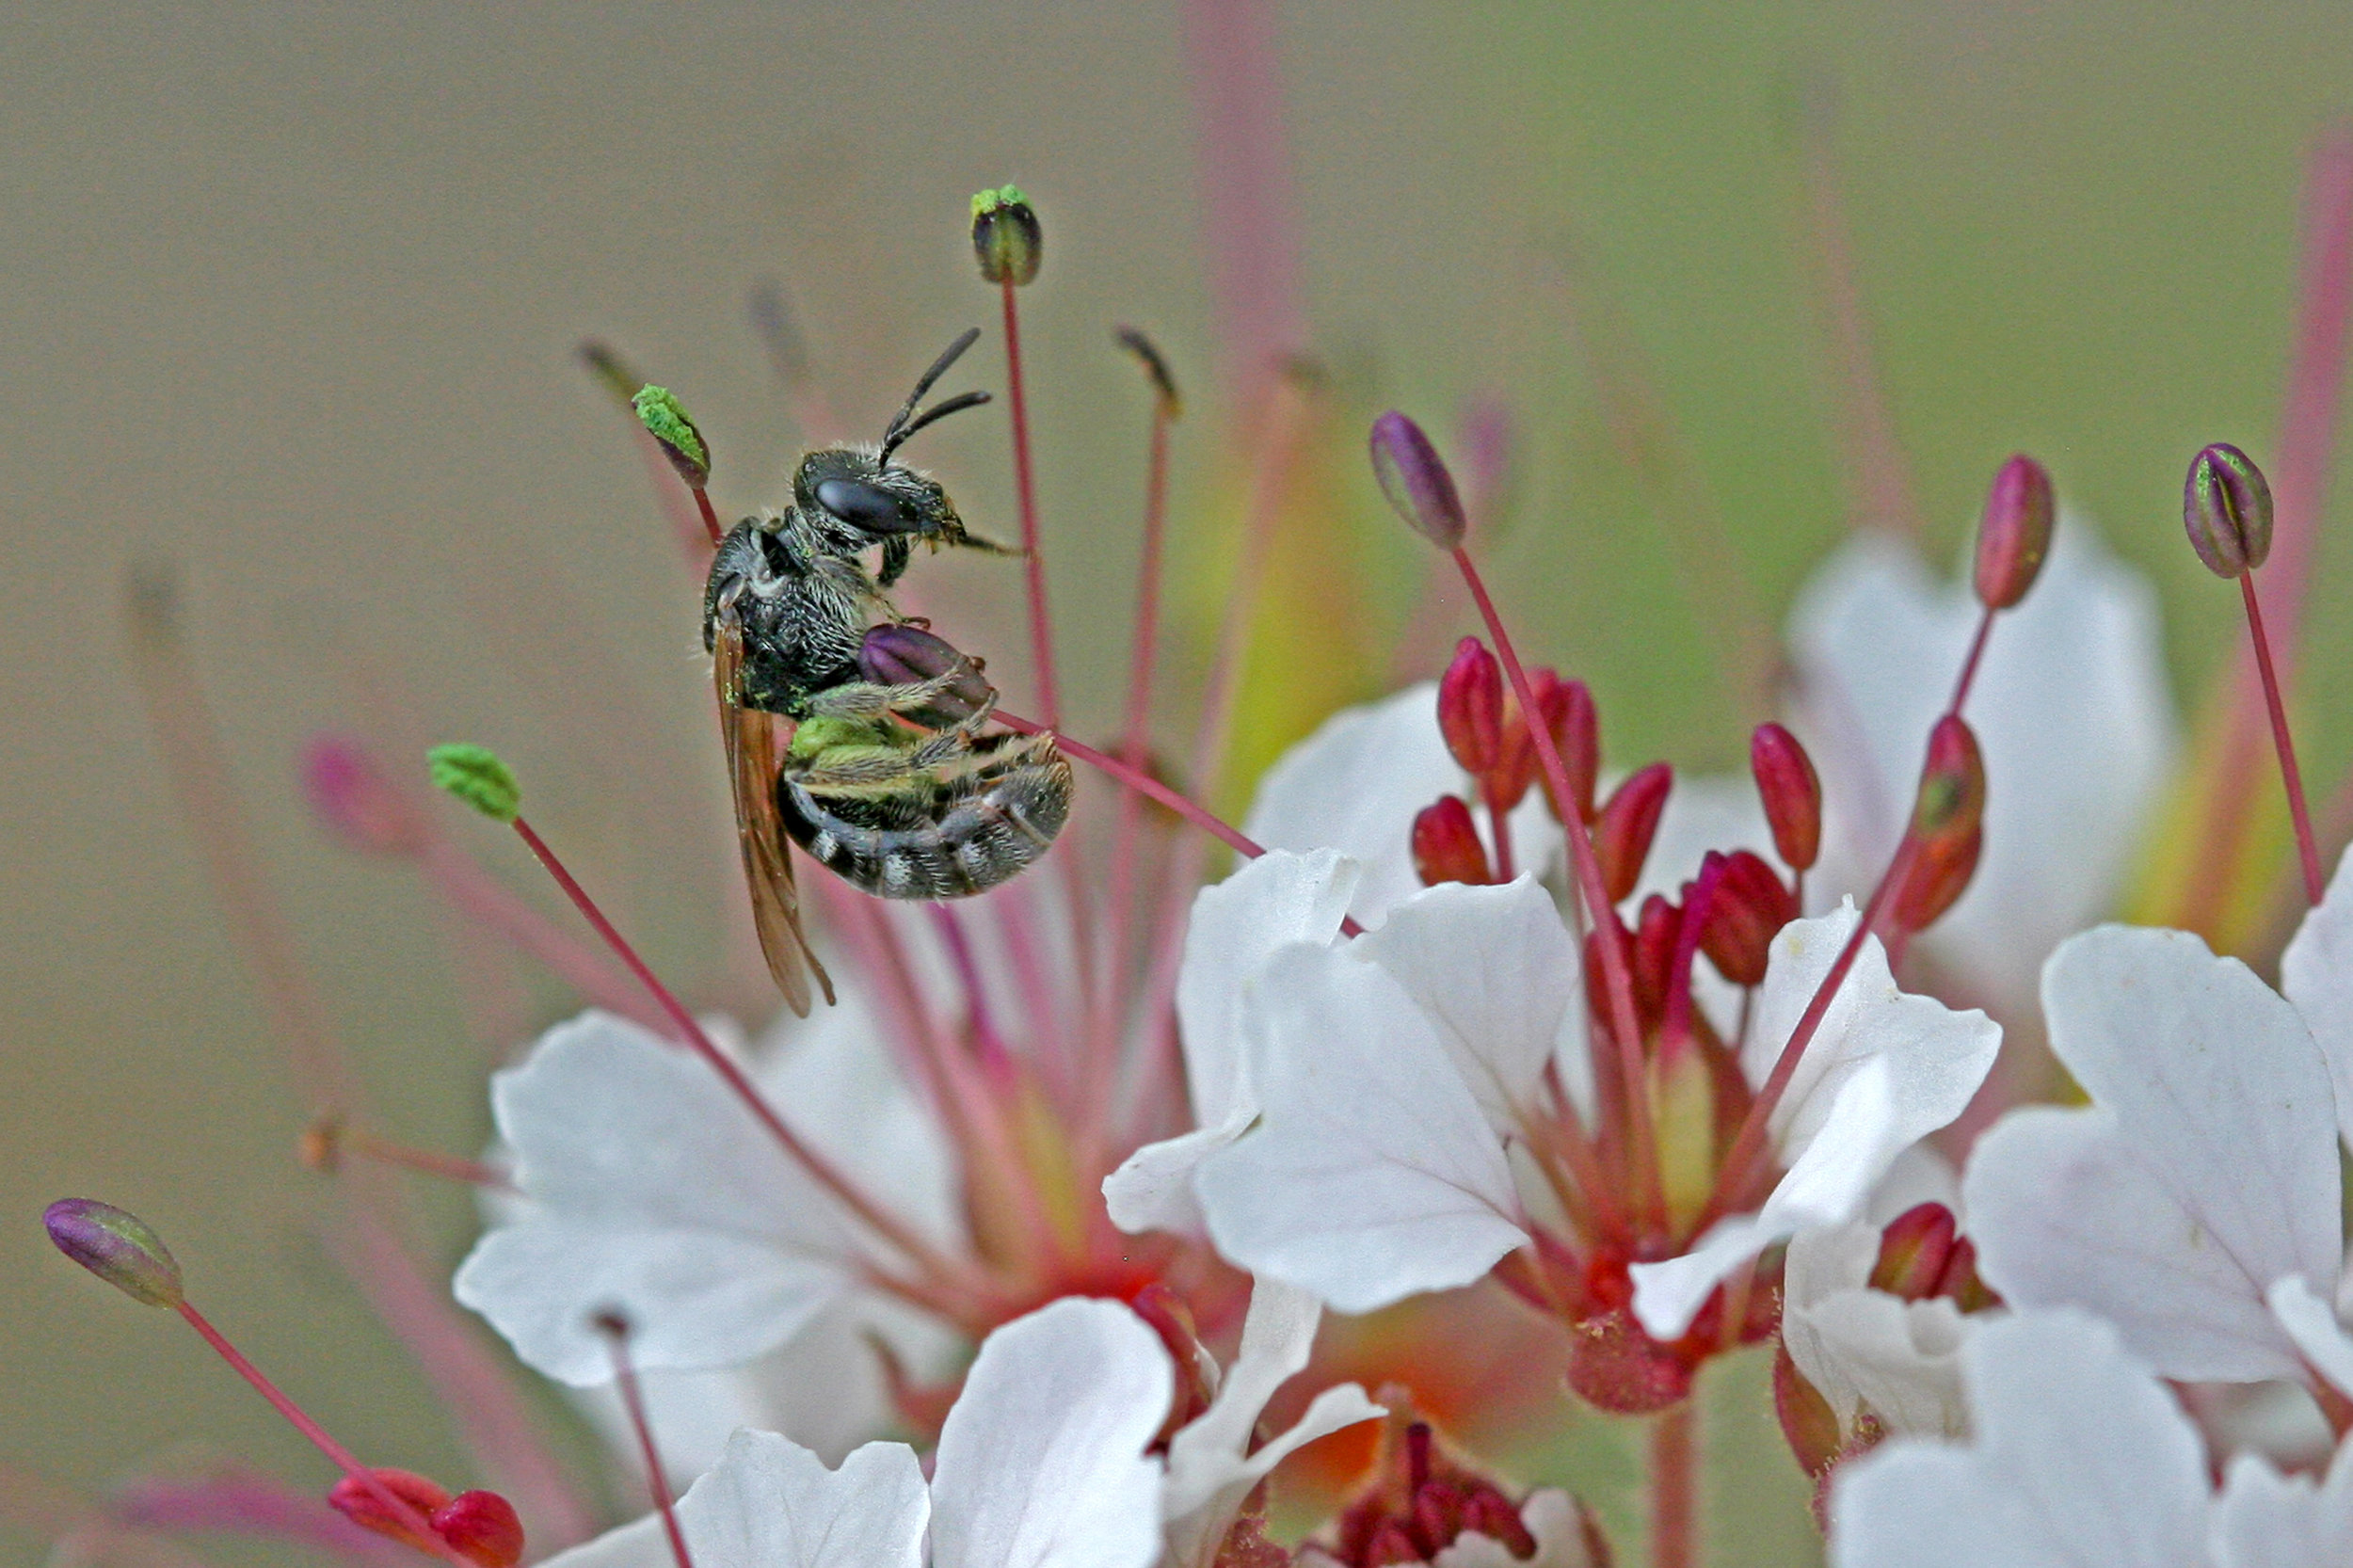 Halictus tripartitus on Polanisia dodecandra in CFB Suffield, Alberta 2013